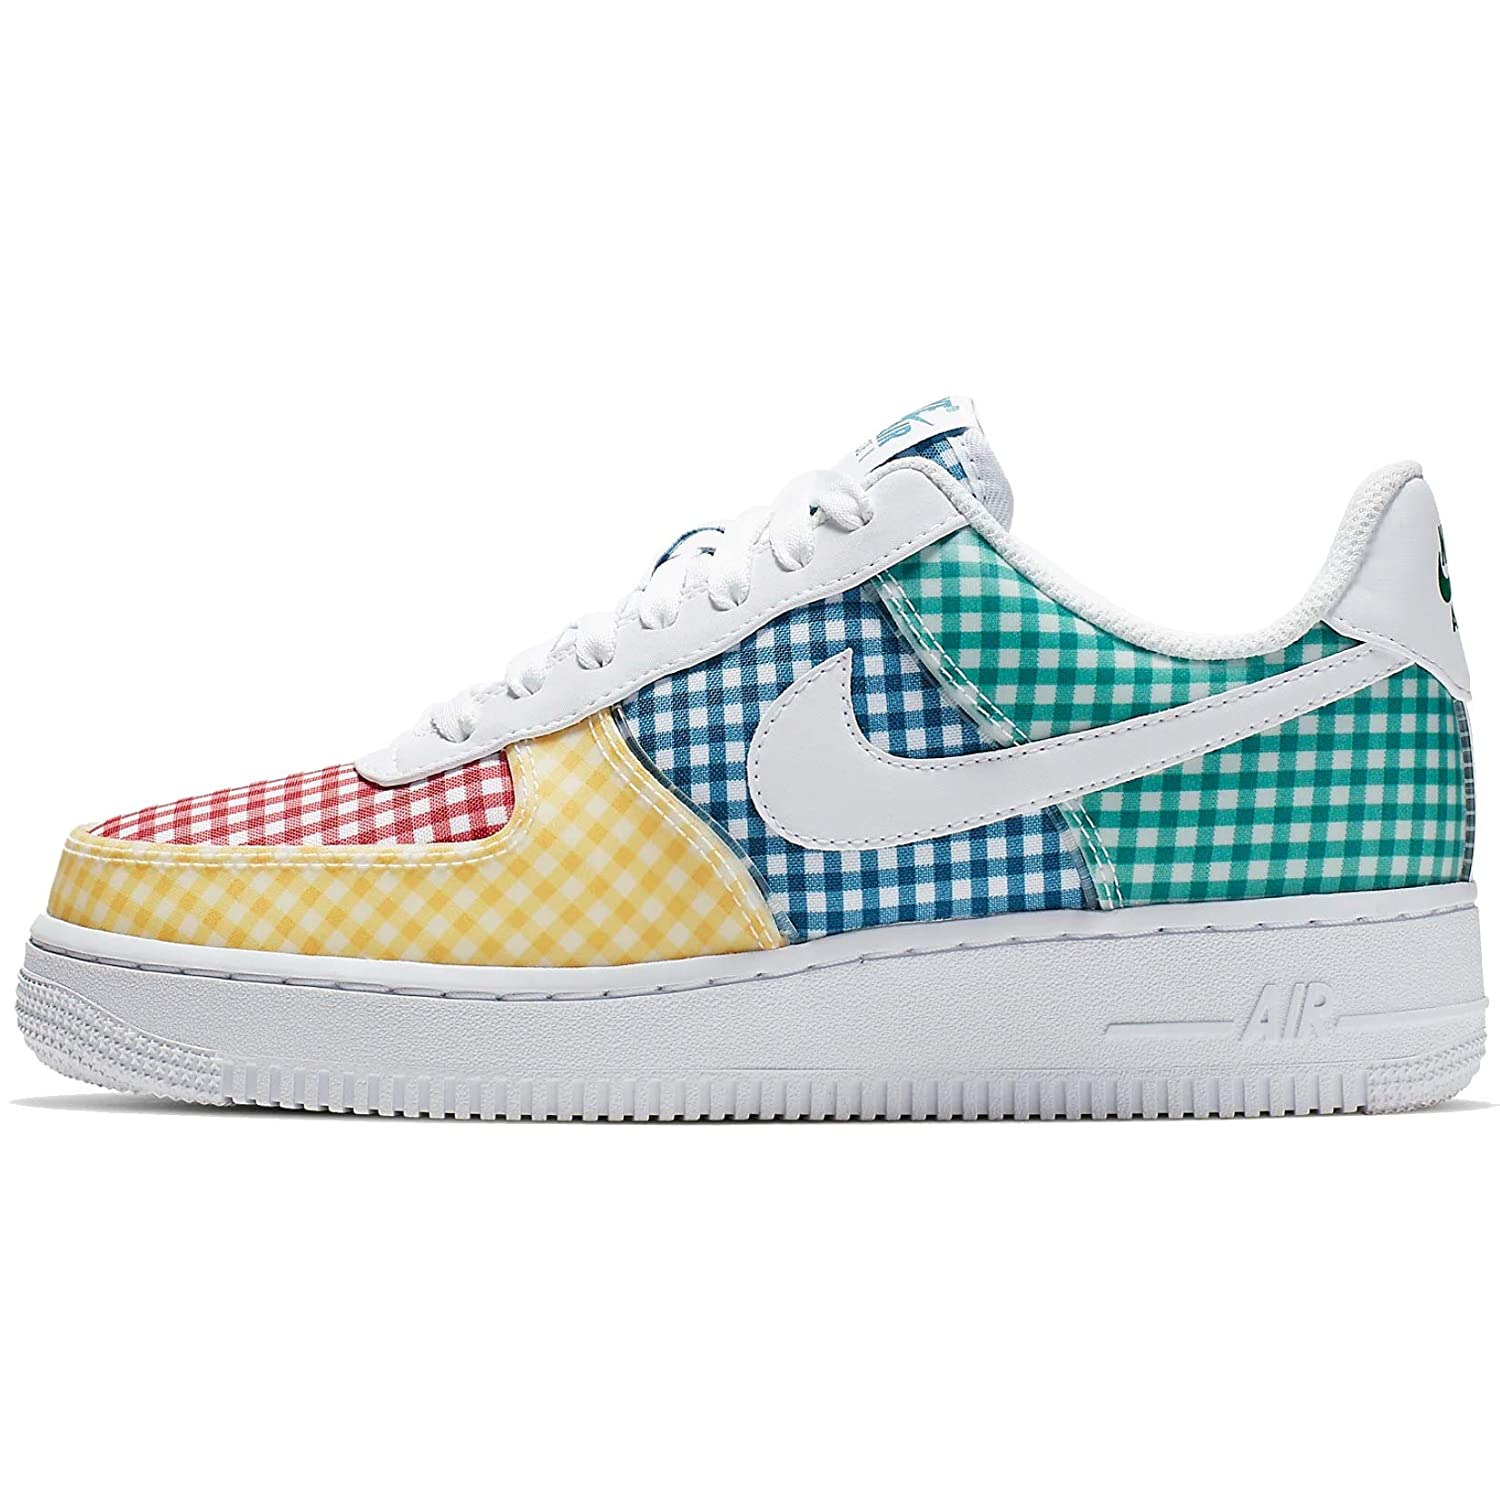 2air force 1 07 qs